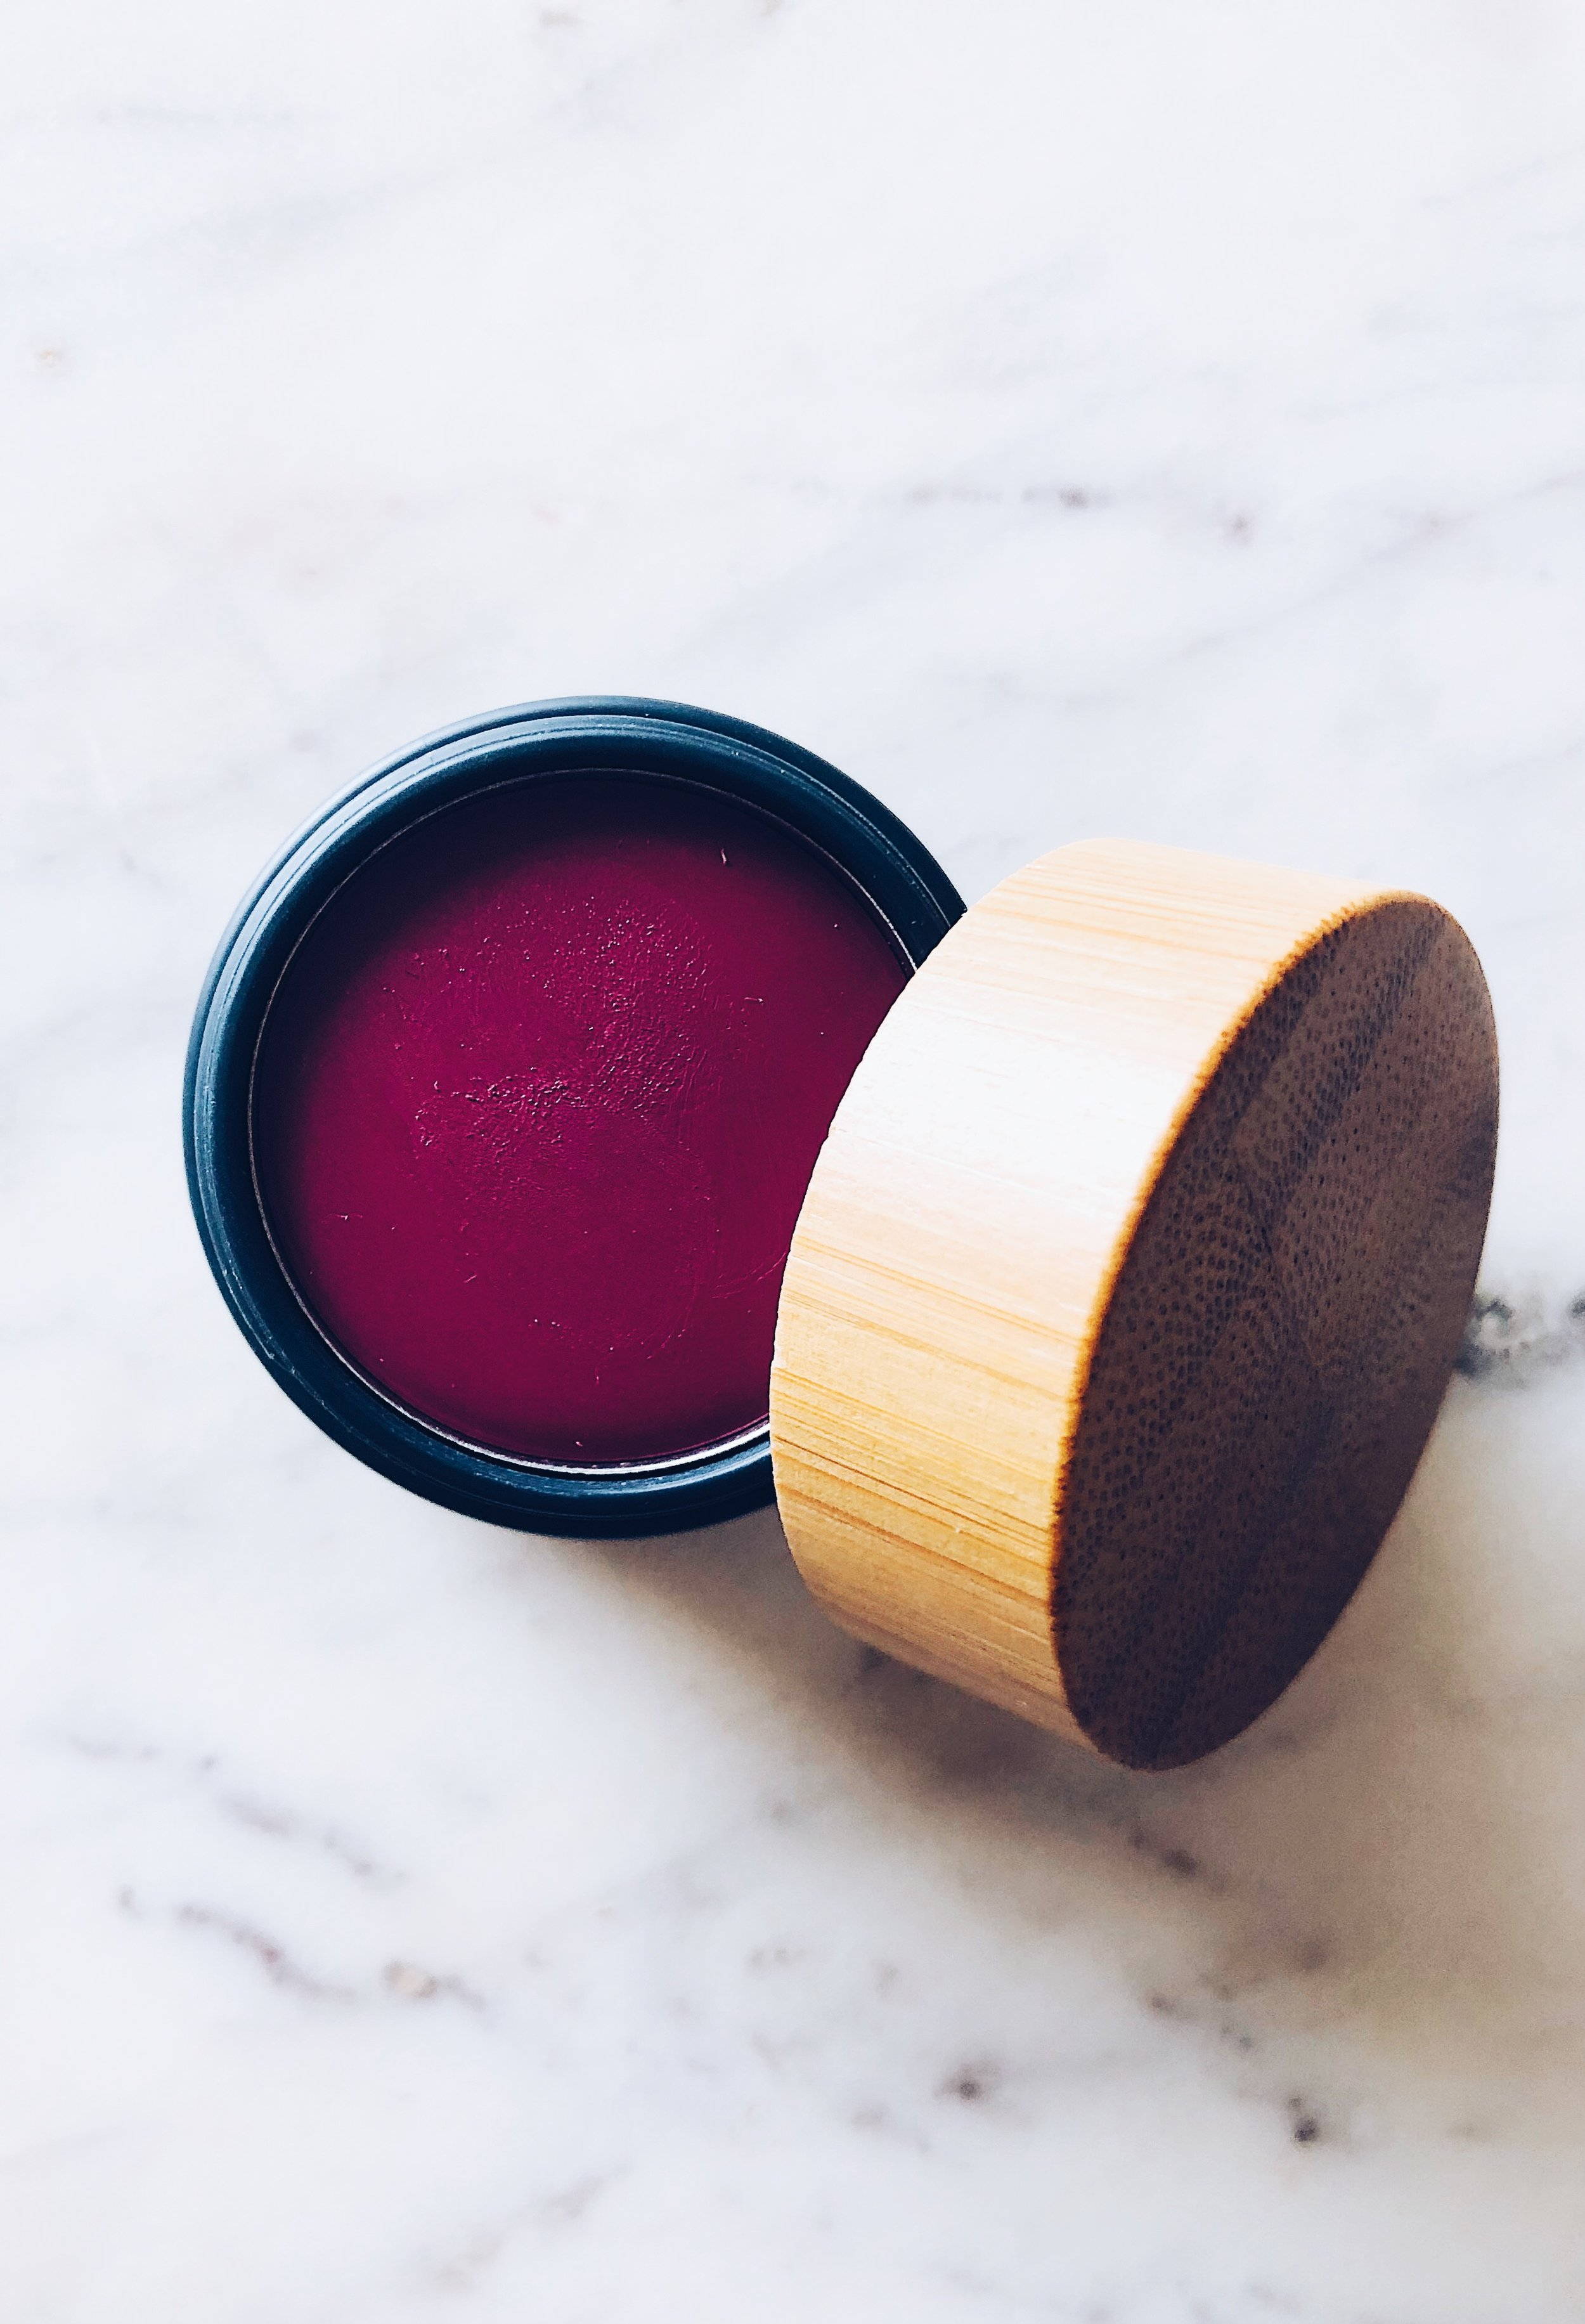 The Organic Skin Co. Cheeky Lips in- $39.00 - Here's the quick SCORECARD breakdown. Each question is rated on a scale of 1 to 5, 5 being the best:1. How do the ingredients look? What's inside?- Looking super solid. There are a few pigments that rated higher on EWG (for the 'velvet' color I have it in), see below.2. How is the color payoff?- 4: So solid. The pigment here is amazing and such a small amount really has a major impact.3. Does the color last?- 4: Yes. It almost stains the lip and stays there for awhile. It's a drier texture, less slick, silky and glossy, so it blends and sinks right in!4. Does it dry out lips?- 4: I liked using something underneath like the Cocokind Macabeet balm. I need that extra moisture, but it didn't dry out my pout. It wasn't super emollient either. I'd say it's in the middle with super-saturated color that can be pressed onto lips/cheeks to create a look.5. How's texture? Does it apply smoothly?- 4: Like I mentioned, it's a bit less-emollient and silky in texture, which helps make it a solid multi-tasker that won't look greasy. It works well over a lightweight moisturizer on cheeks!6. How is the scent? Is it overwhelming?- 5: Not at all. There's not a detectable or overpowering scent. No headaches here!7. How conscious is the brand? 5- I rarely give a '5' for this. Check out their site! Major 'wow' factor on the combo of being cruelty-free, vegan, recyclable, offering refills, and the brand keeps the environment top of mind by planting trees for every product sold! Job well done.FINAL SCORE:26/30